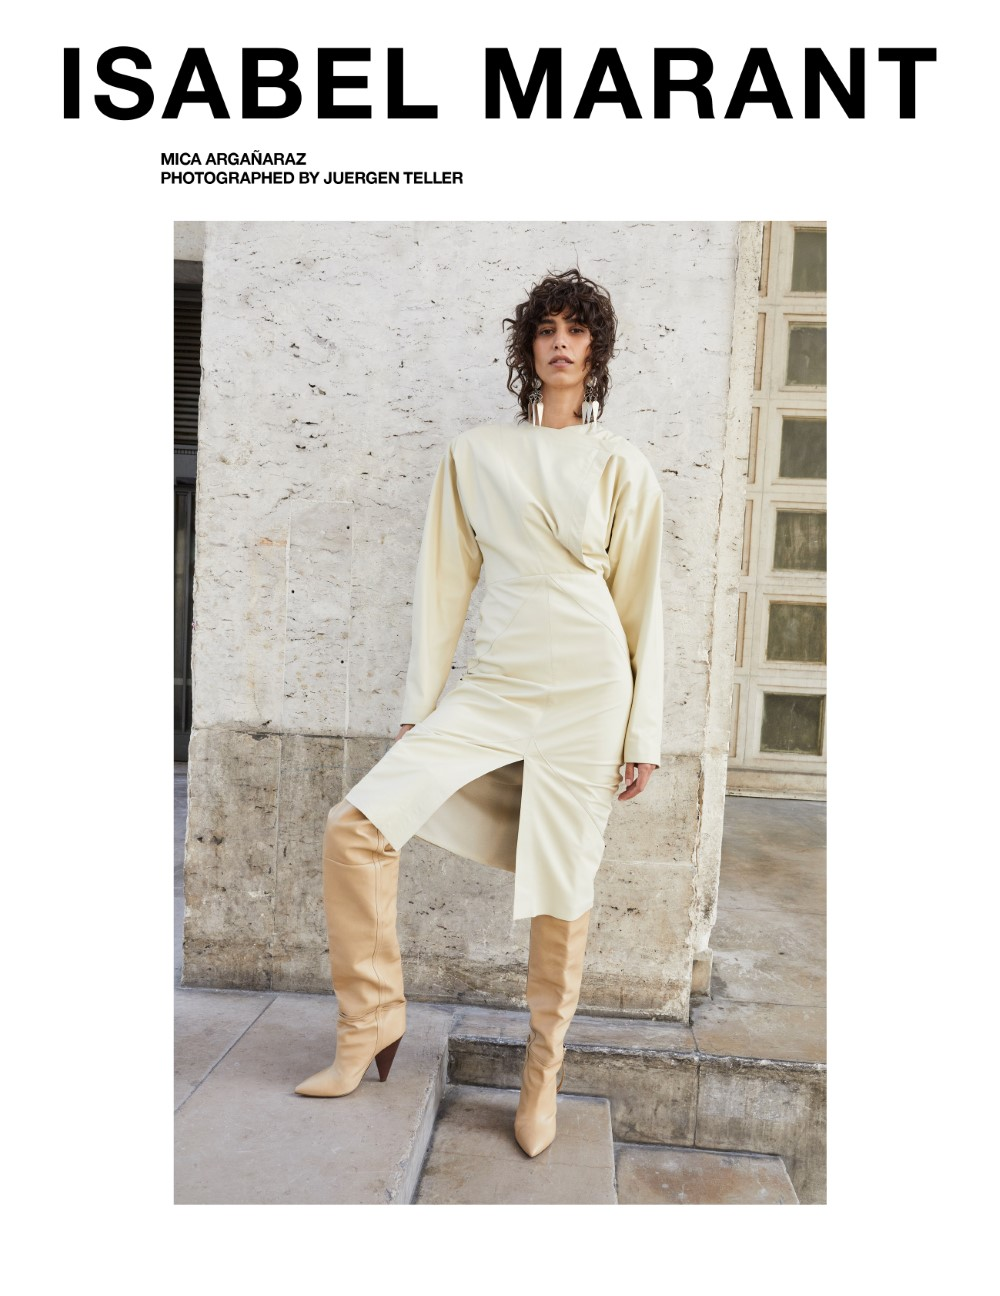 Isabel Marant - Campagne Automne-Hiver 2020